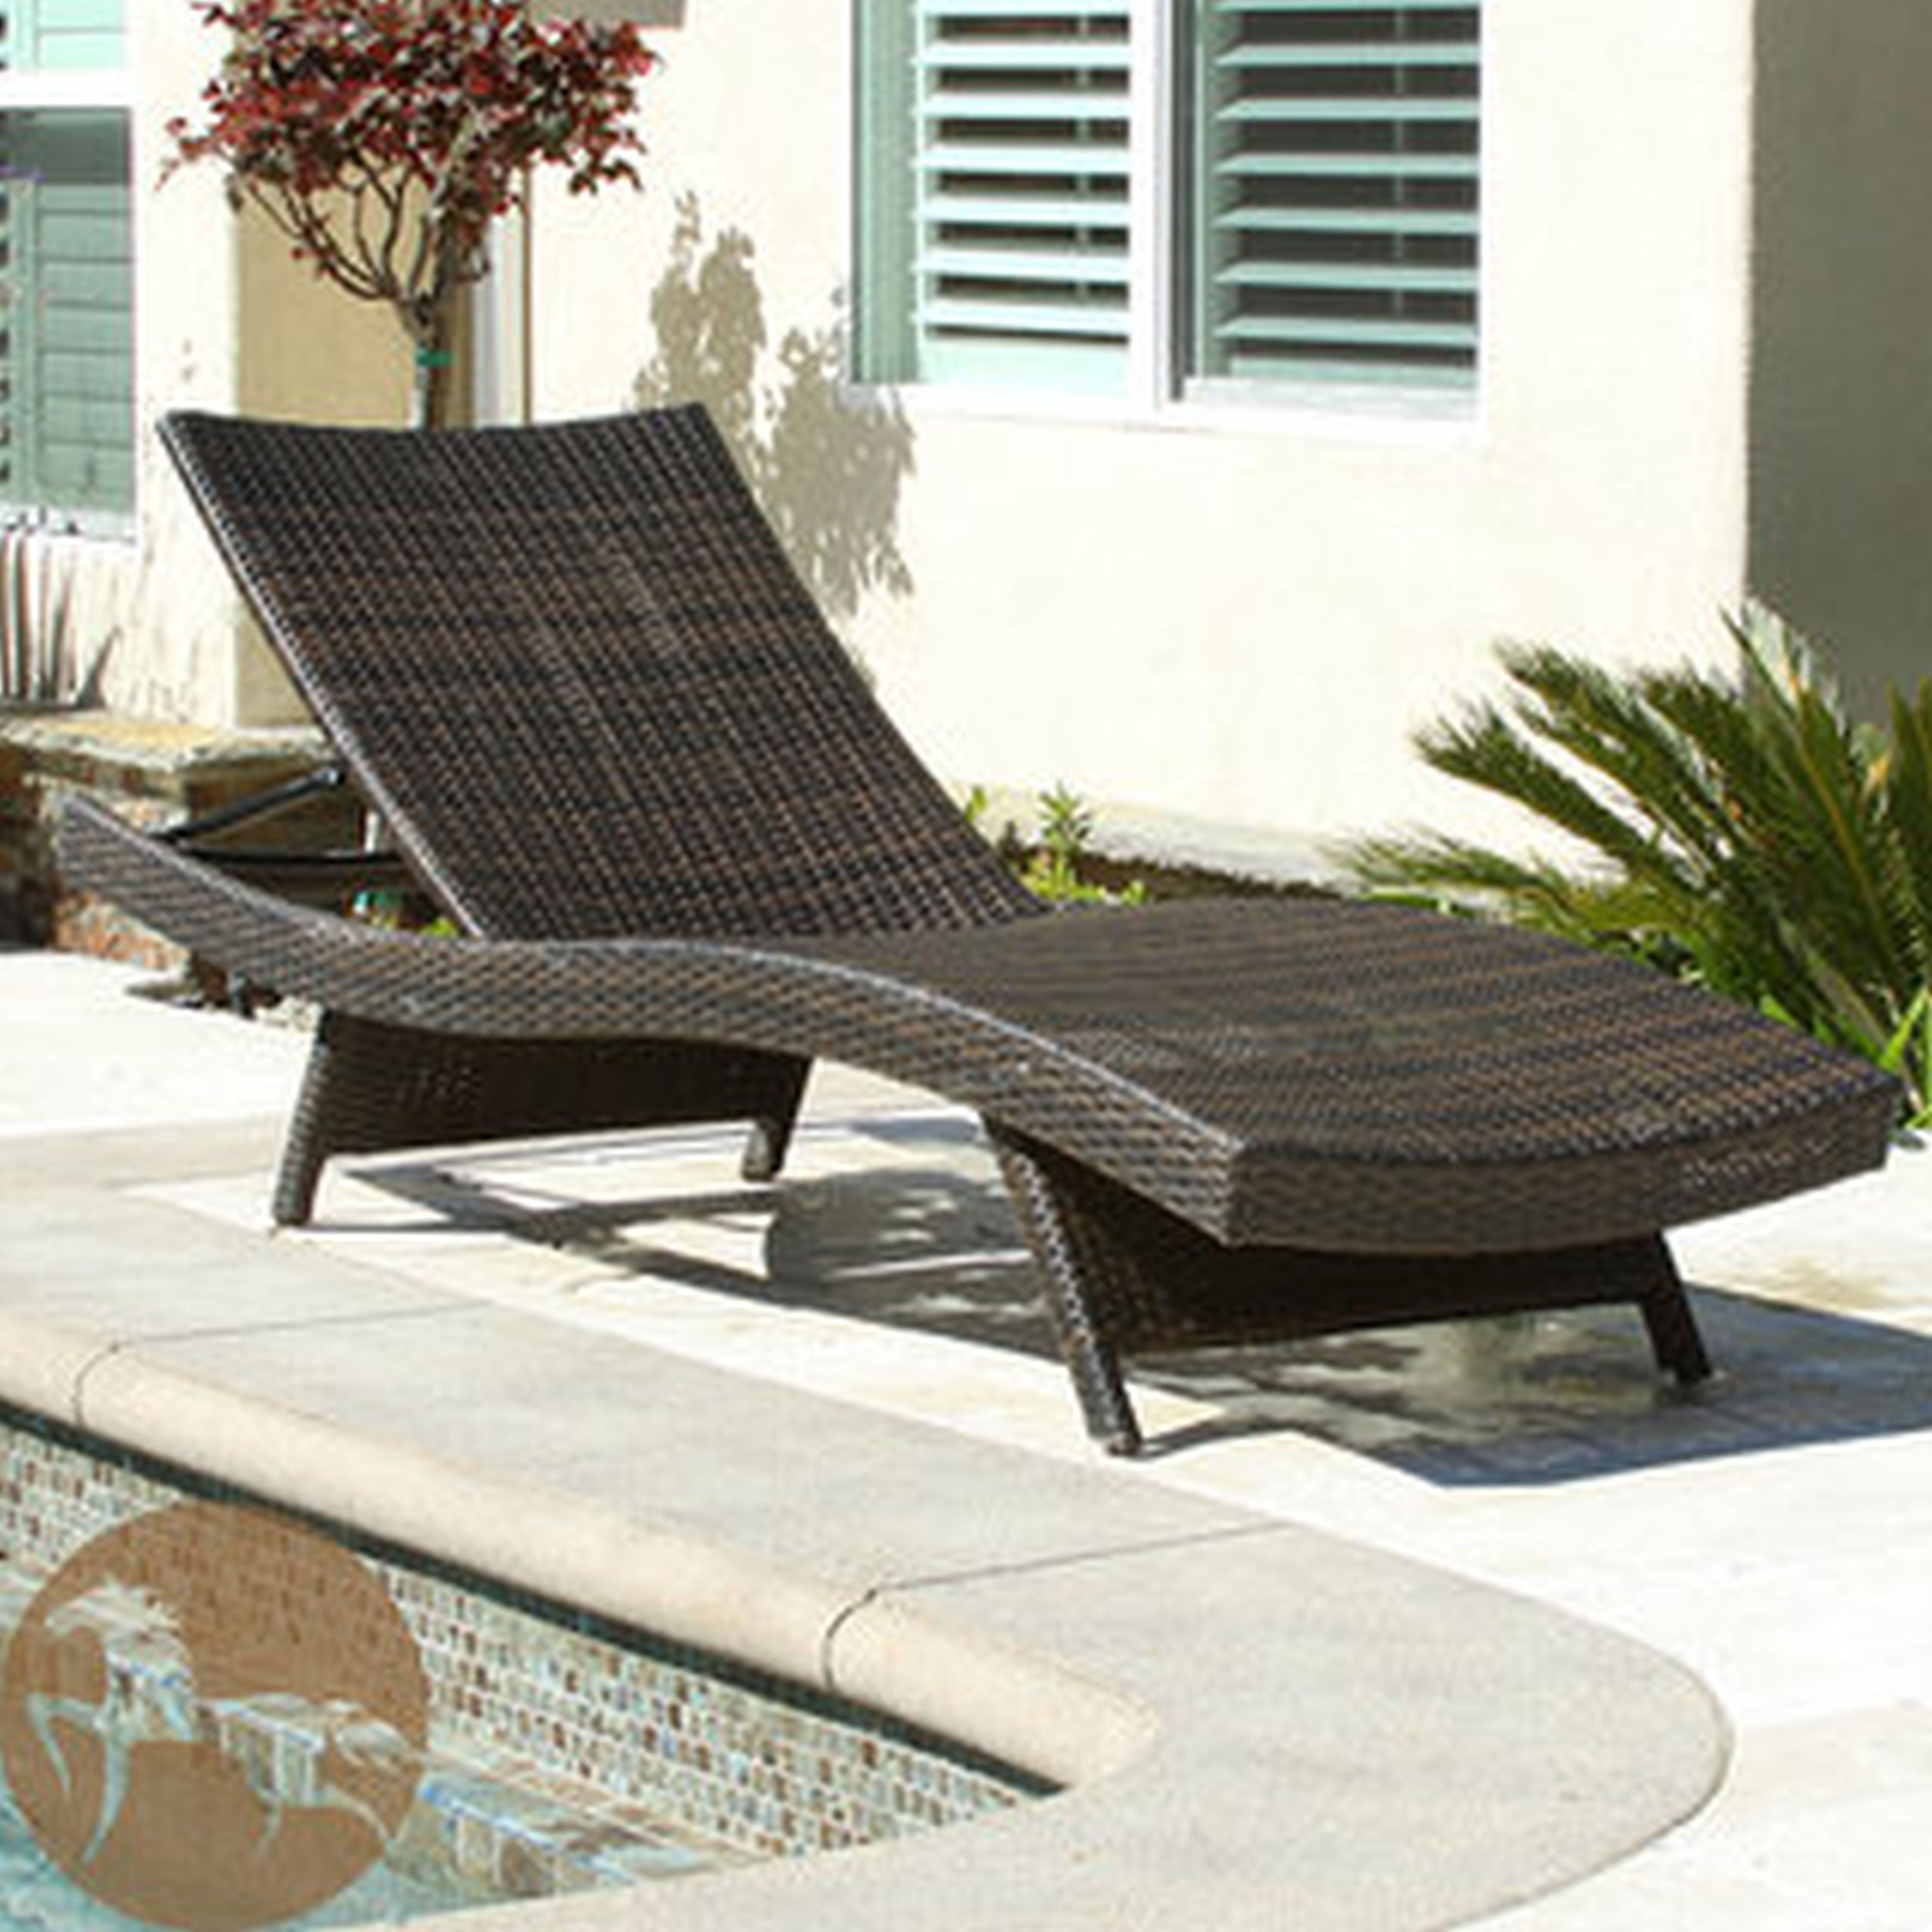 Patio Chaise Lounge As The Must Have Furniture In Your Pool Deck With Fashionable Adams Chaise Lounges (View 12 of 15)